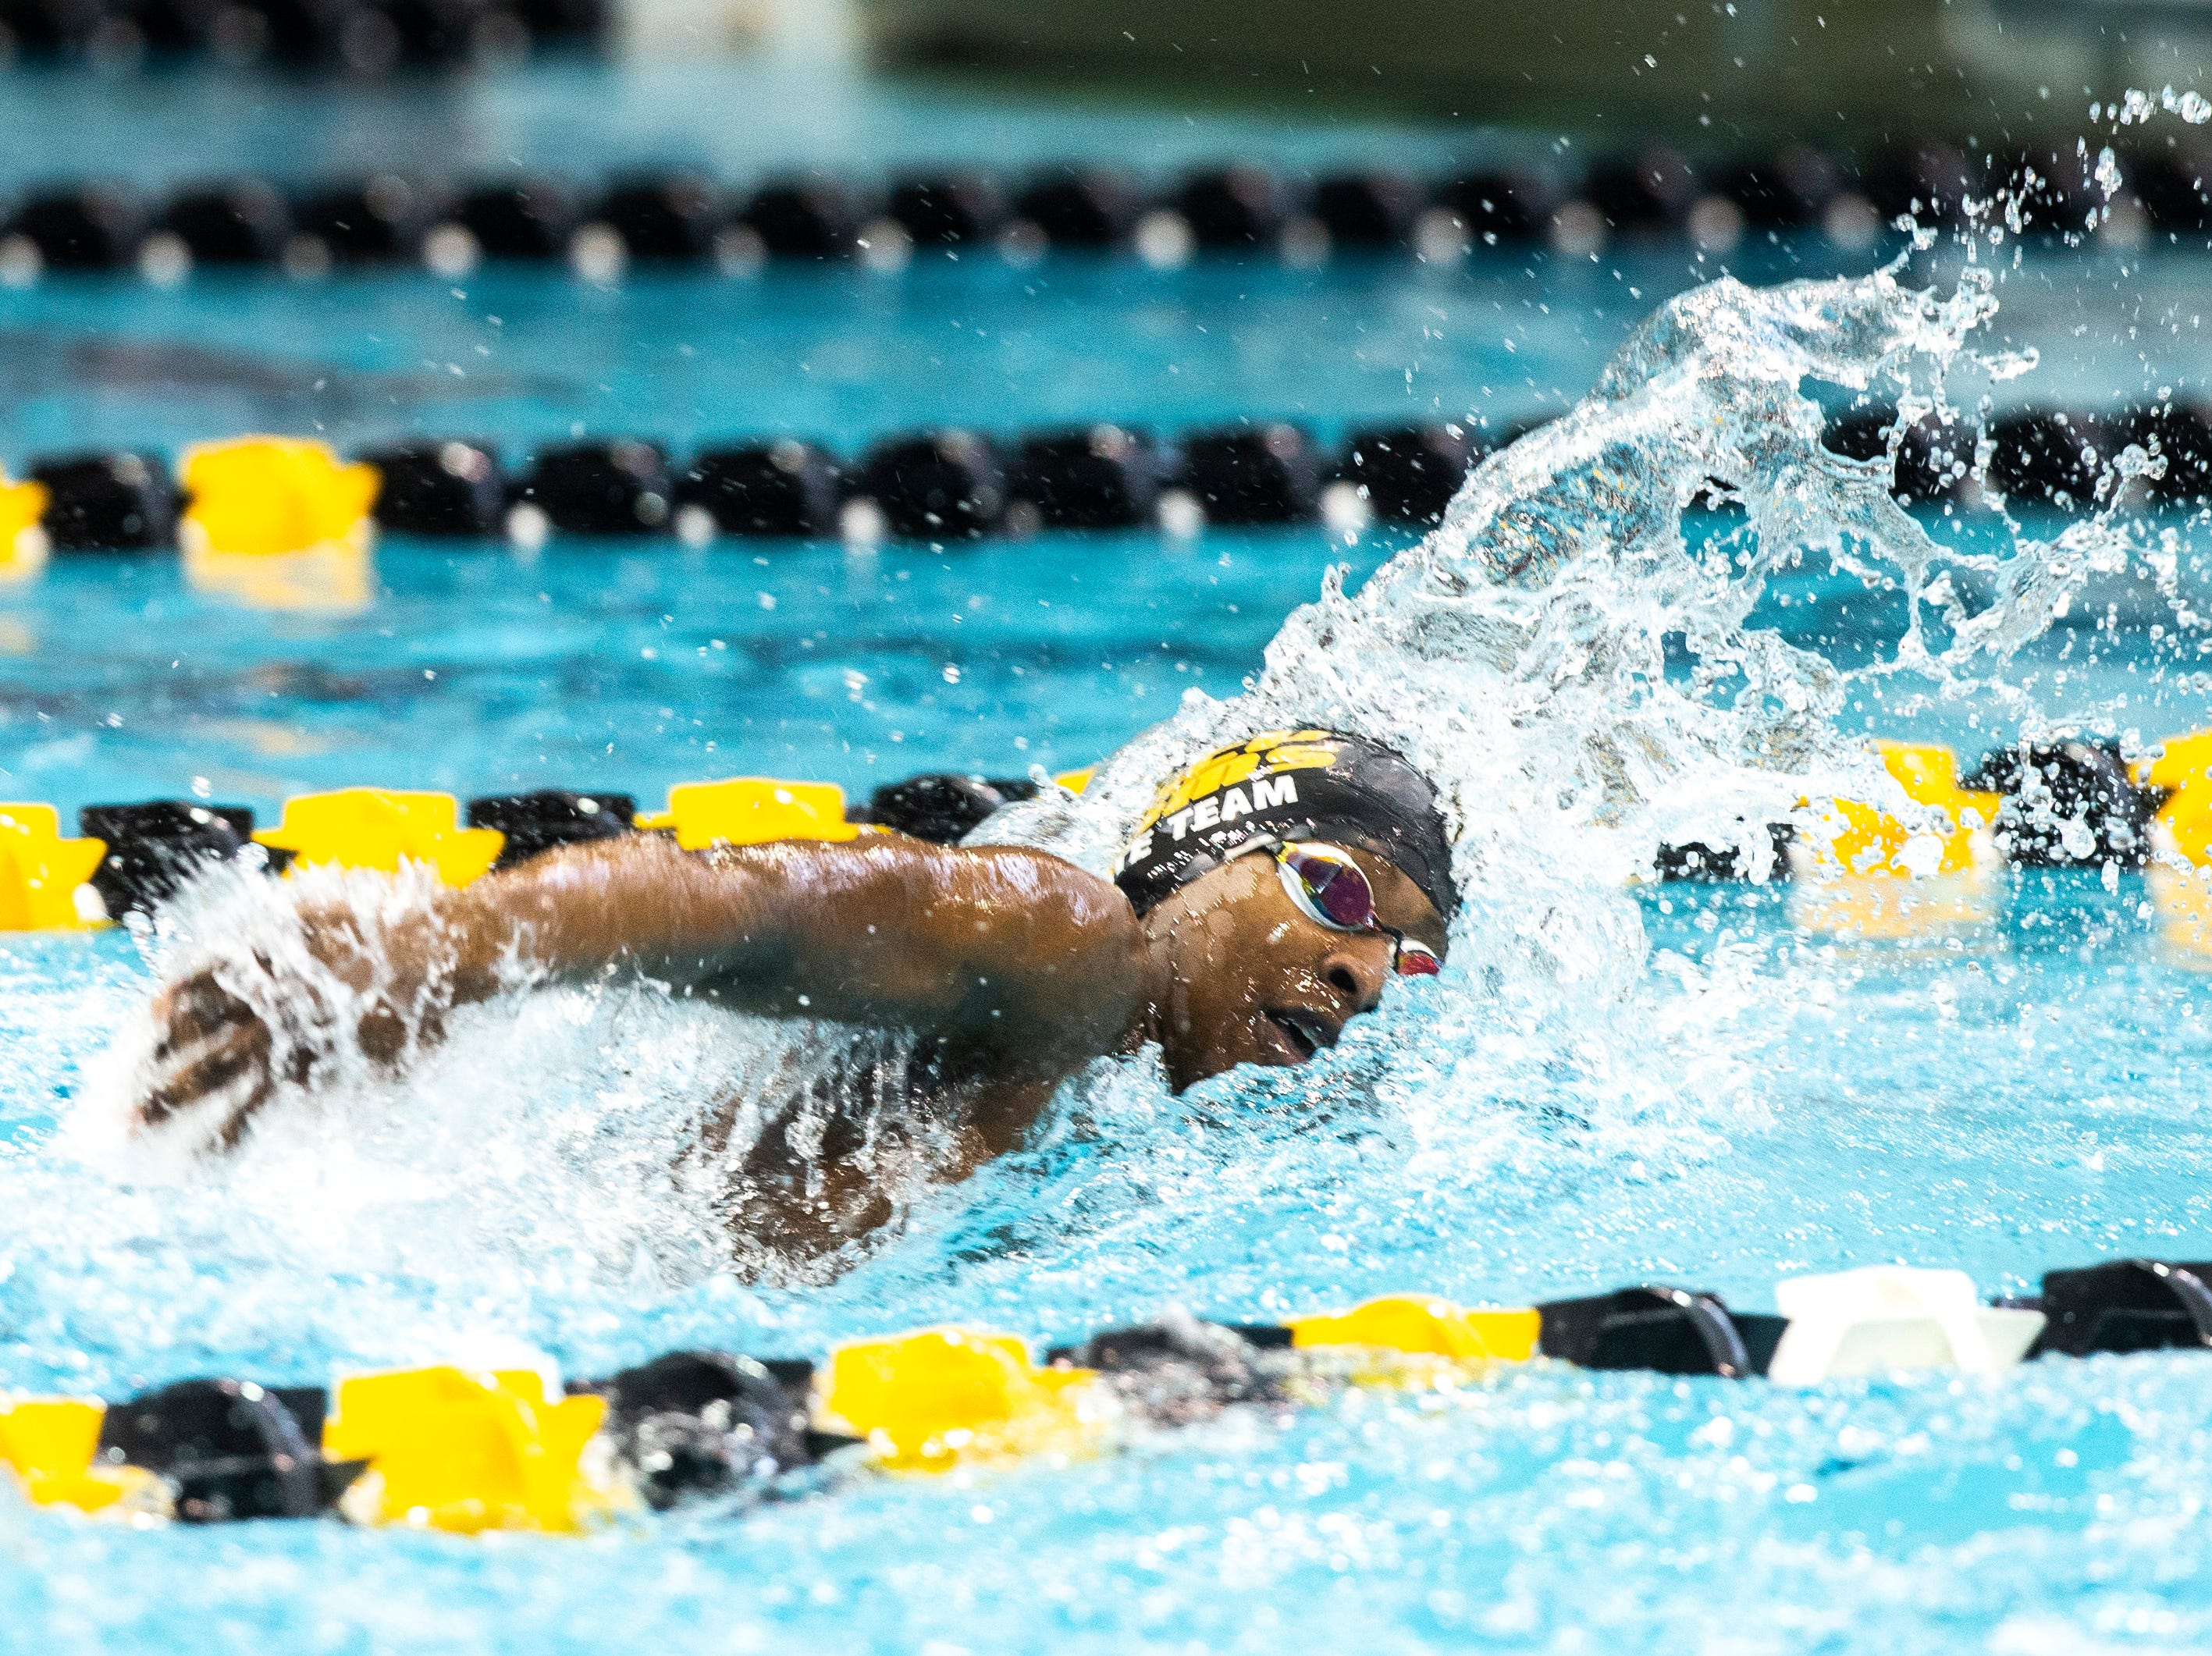 Southeast Polk  senior Will Toomey competes in the 100 yard freestyle during the Iowa boys' state swimming regional championship meet on Saturday, Feb. 9, 2019 at Campus Recreation and Wellness Center on the University of Iowa campus in Iowa City, Iowa. Toomey finished 22nd overall, with a time of 48.73.